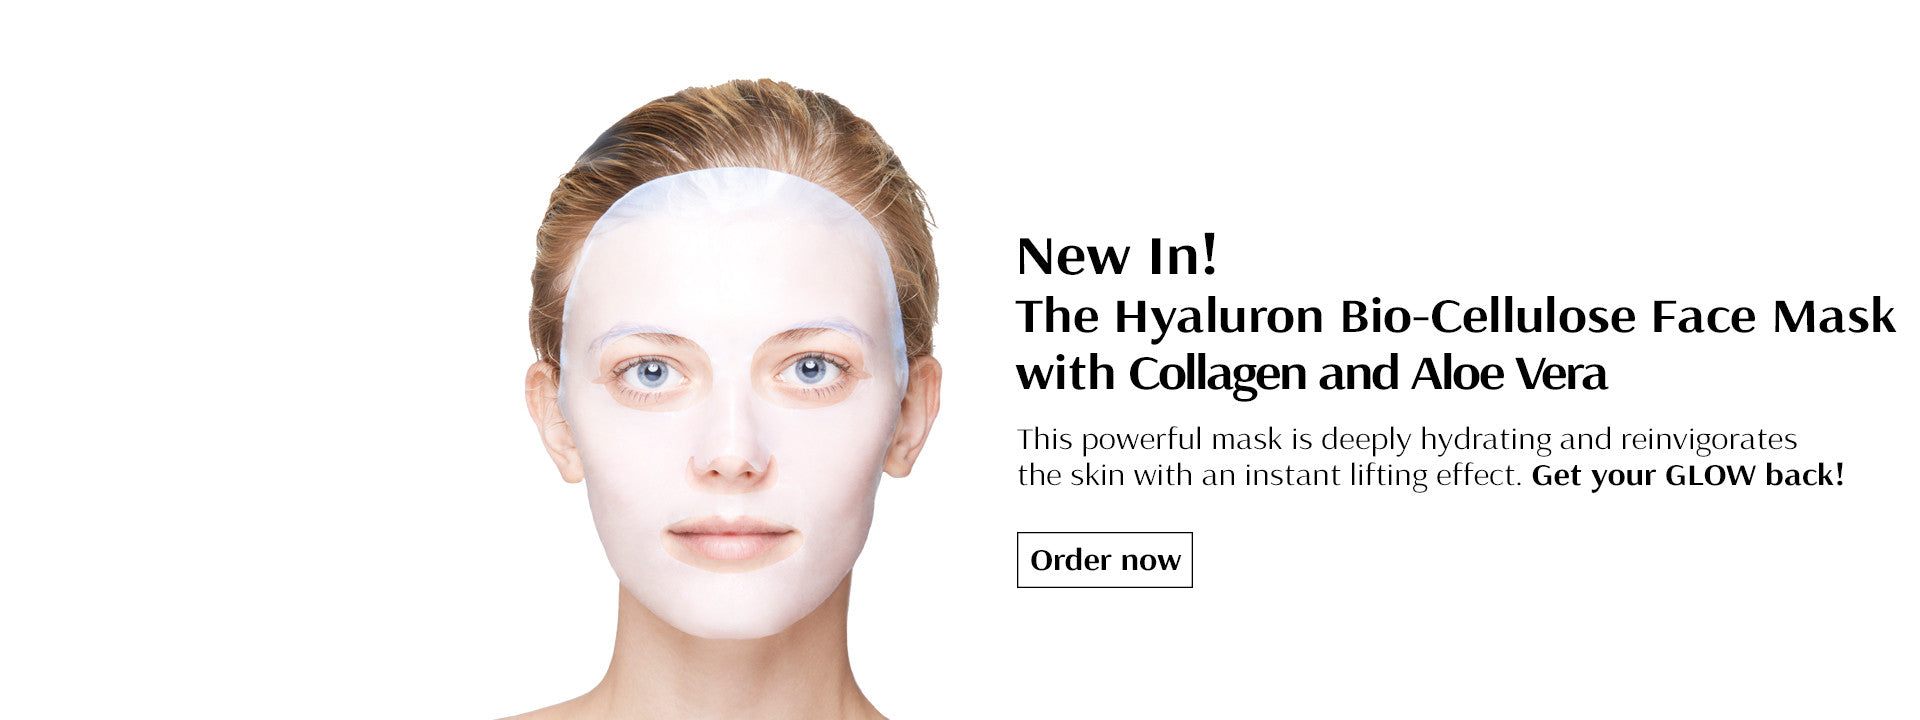 Hyaluron Bio-Cellulose Face Mask